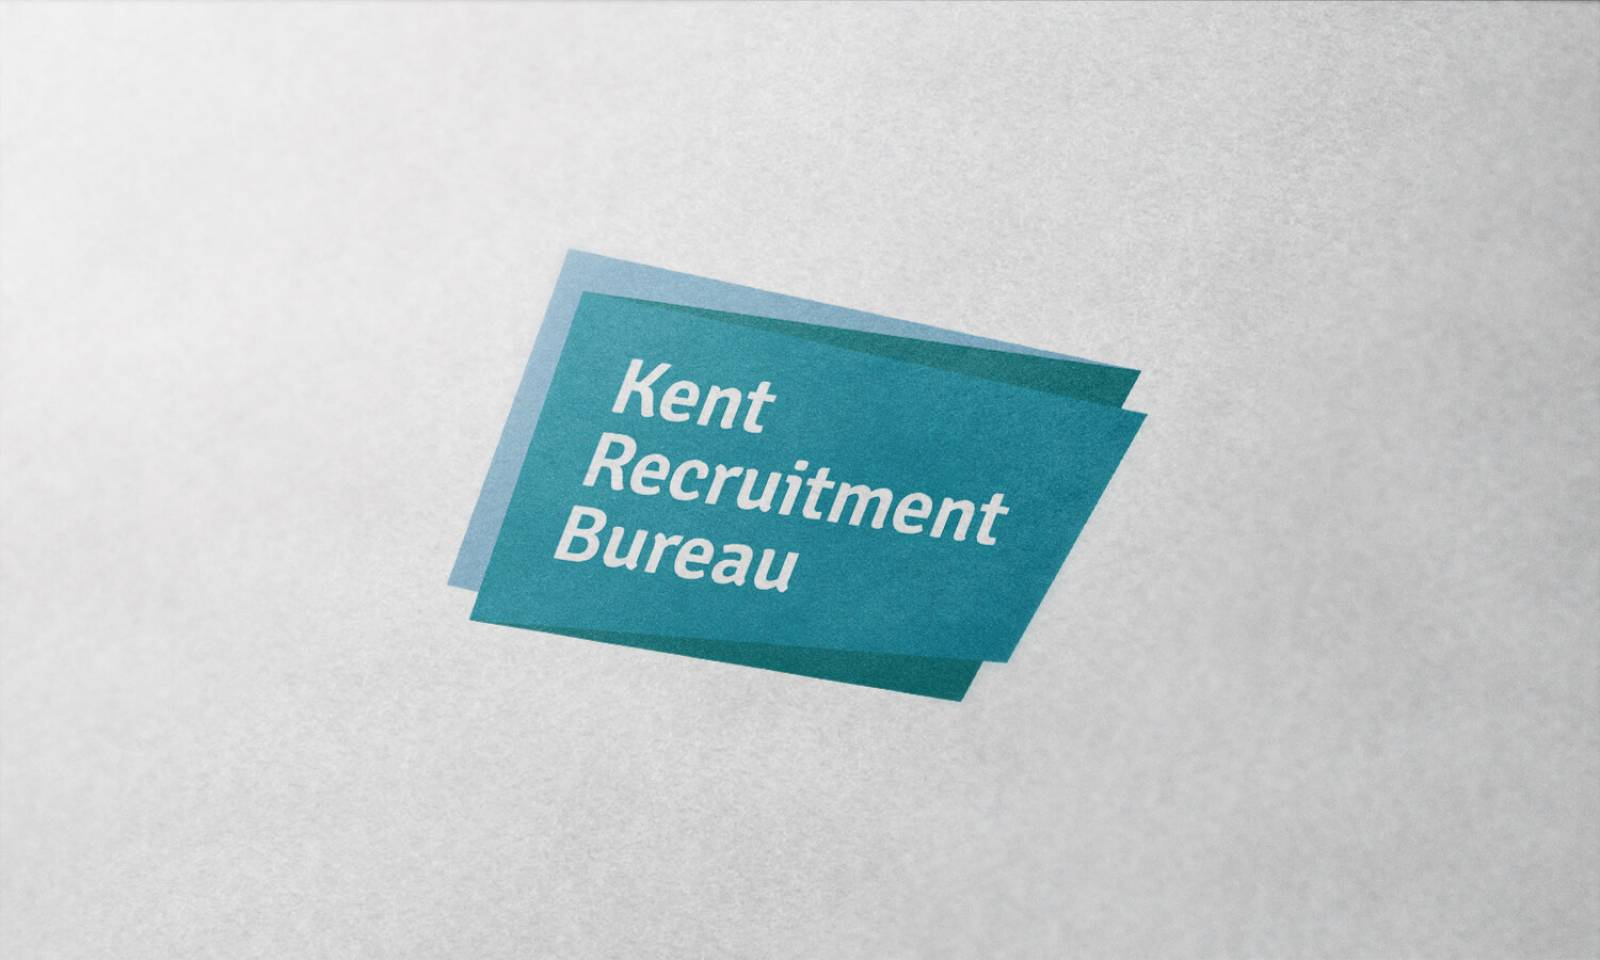 KRB-2-logo-corporate-identity-agency-graphic-design-canterbury.jpg